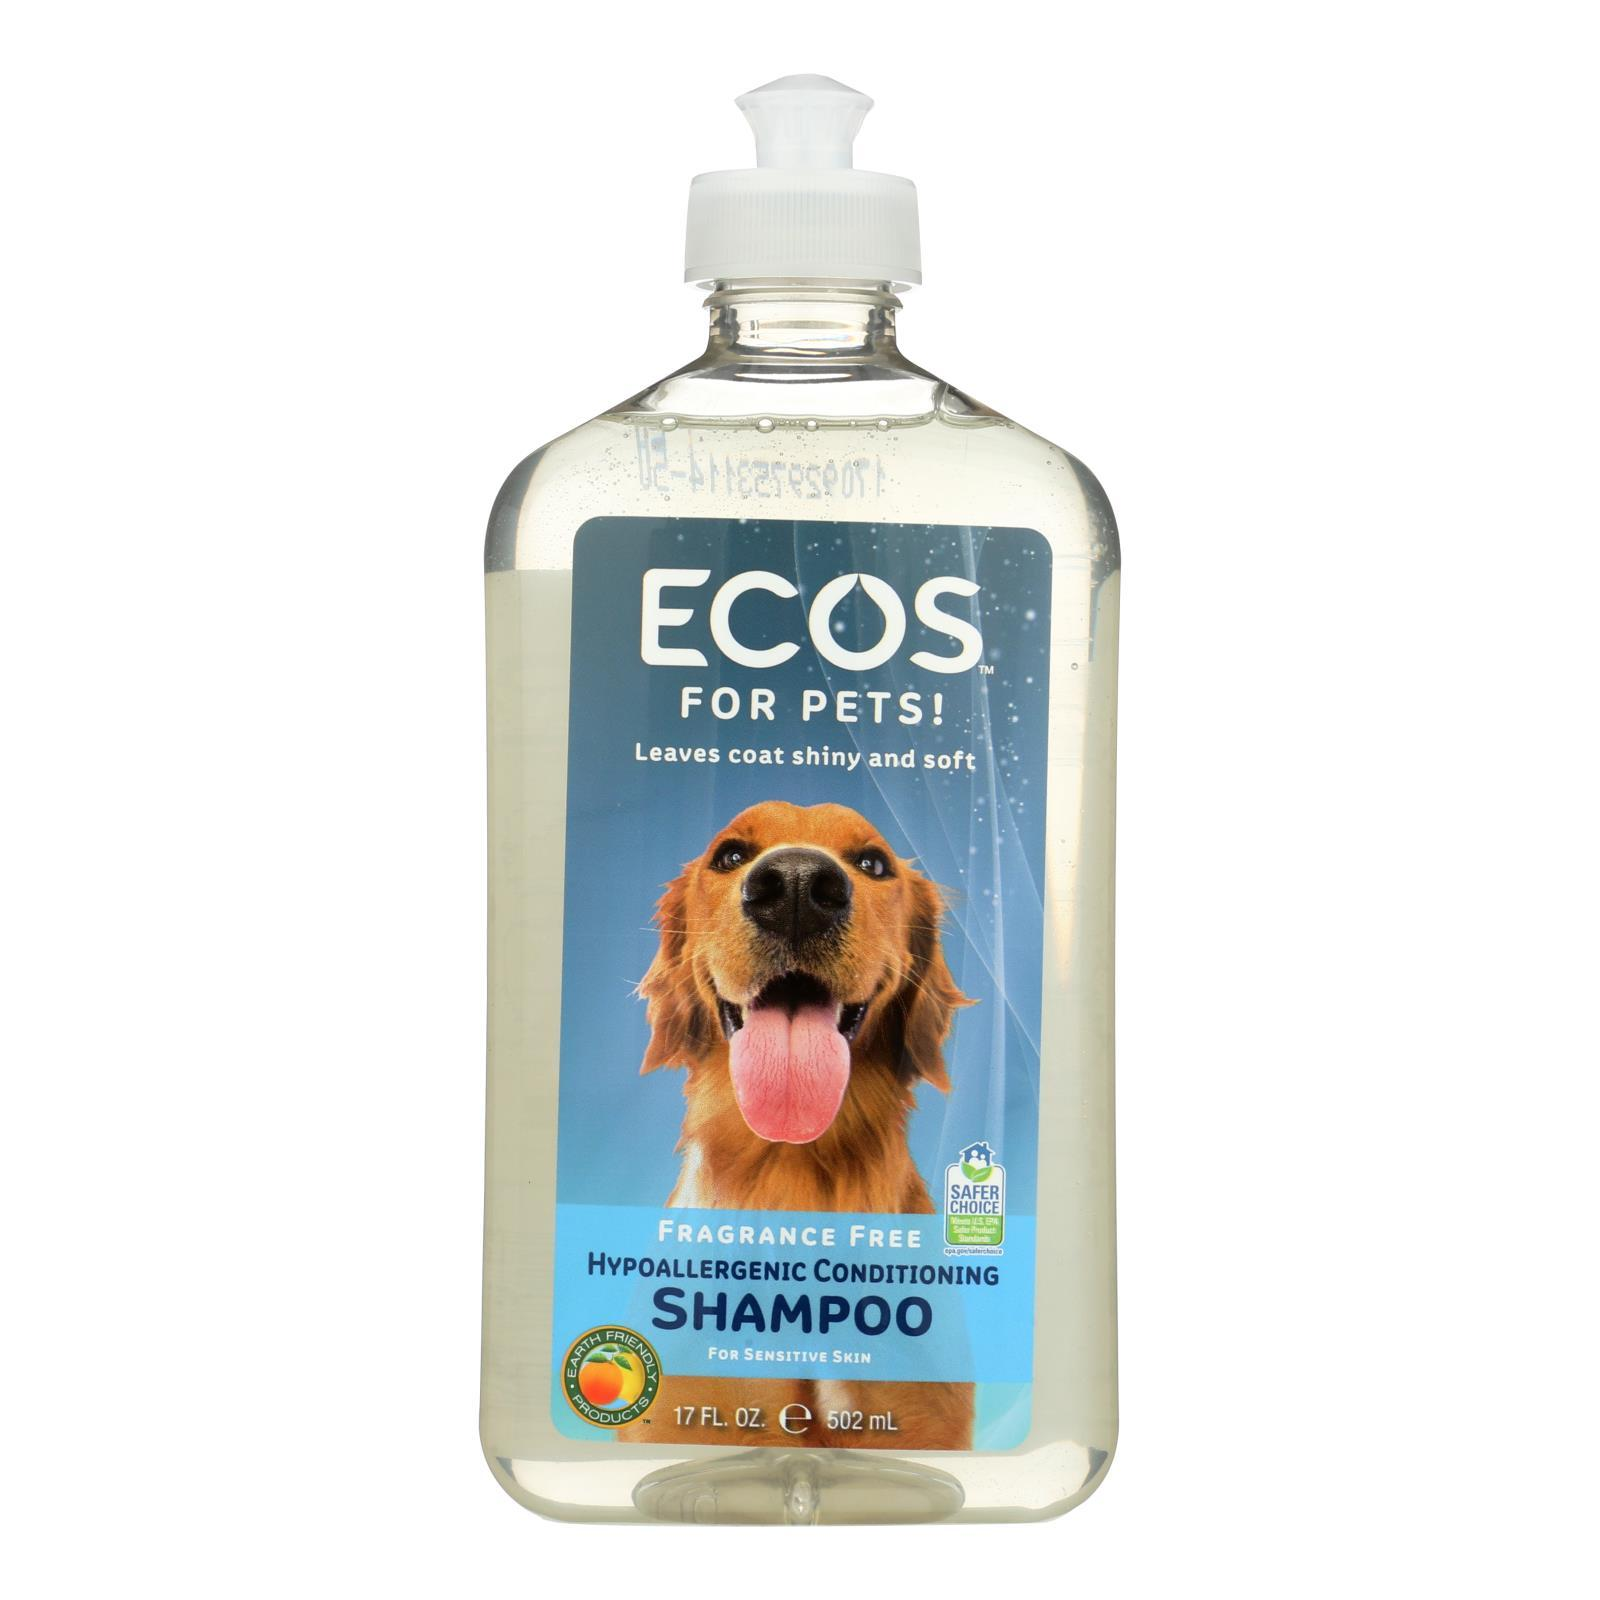 Ecos - Hypoallergenic Conditioning Pet Shampoo - Fragrance Free - 17 Fl Oz. - BeeGreen